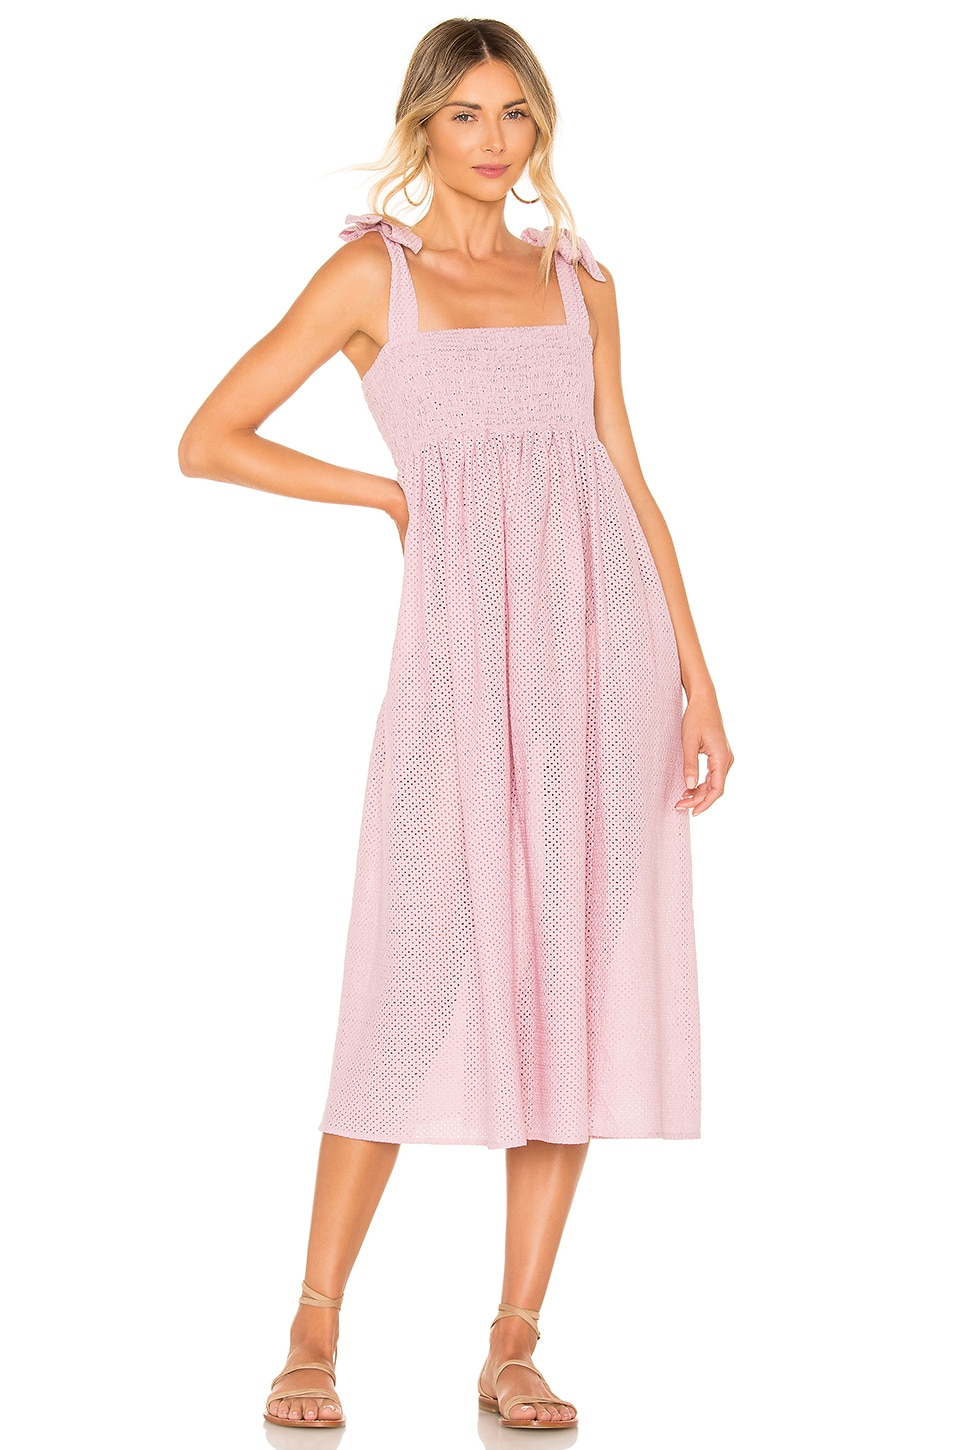 Marysia Swim Sicily Smocked Dress in Lavender